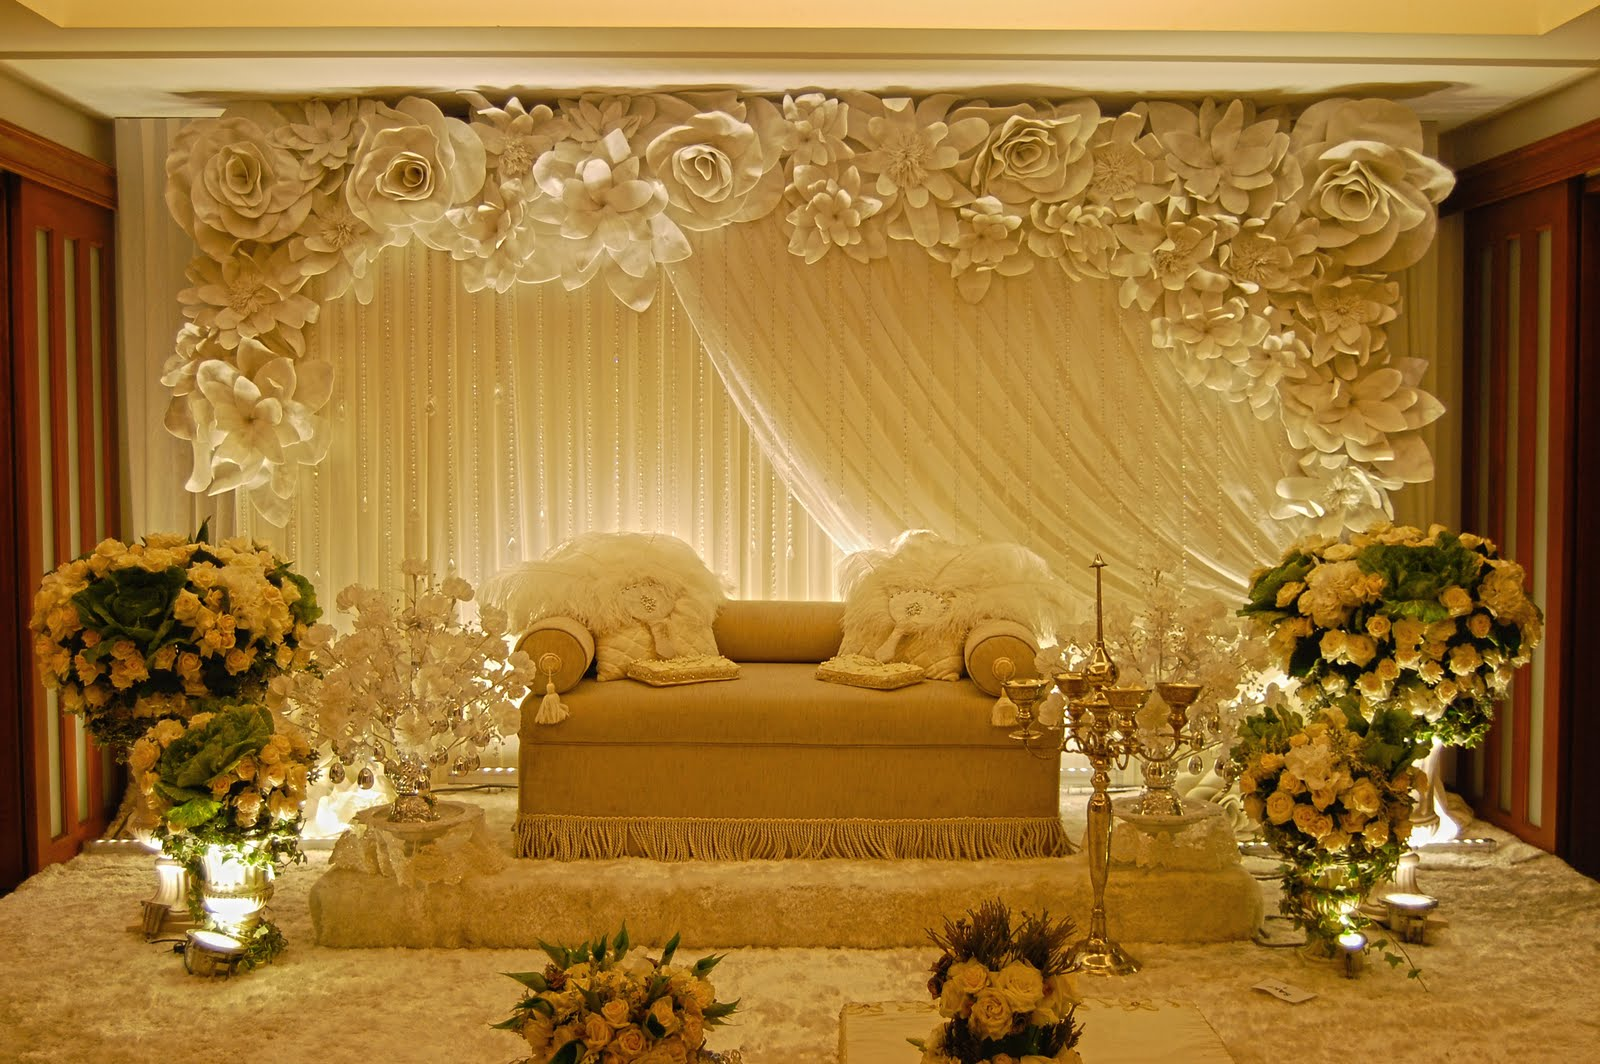 1000 images about wedding backdrop idea on pinterest for Backdrop decoration ideas